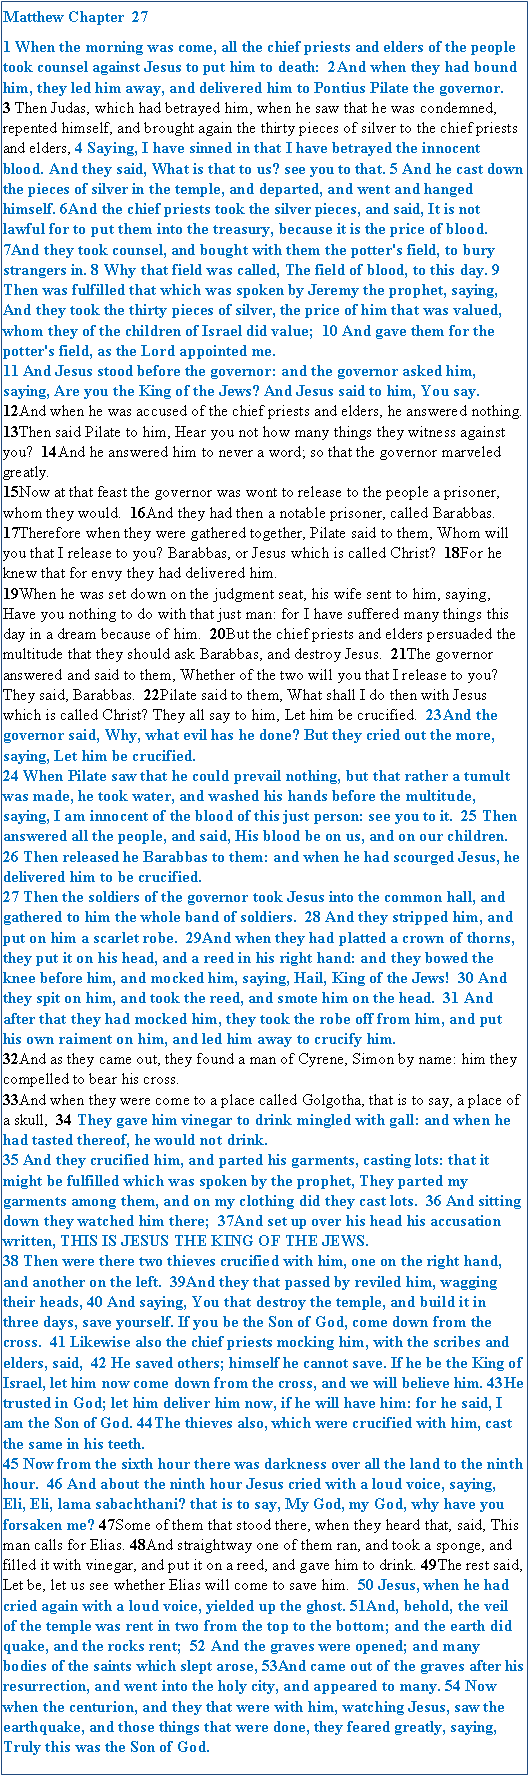 Text Box: Matthew Chapter 27 [NKJV]